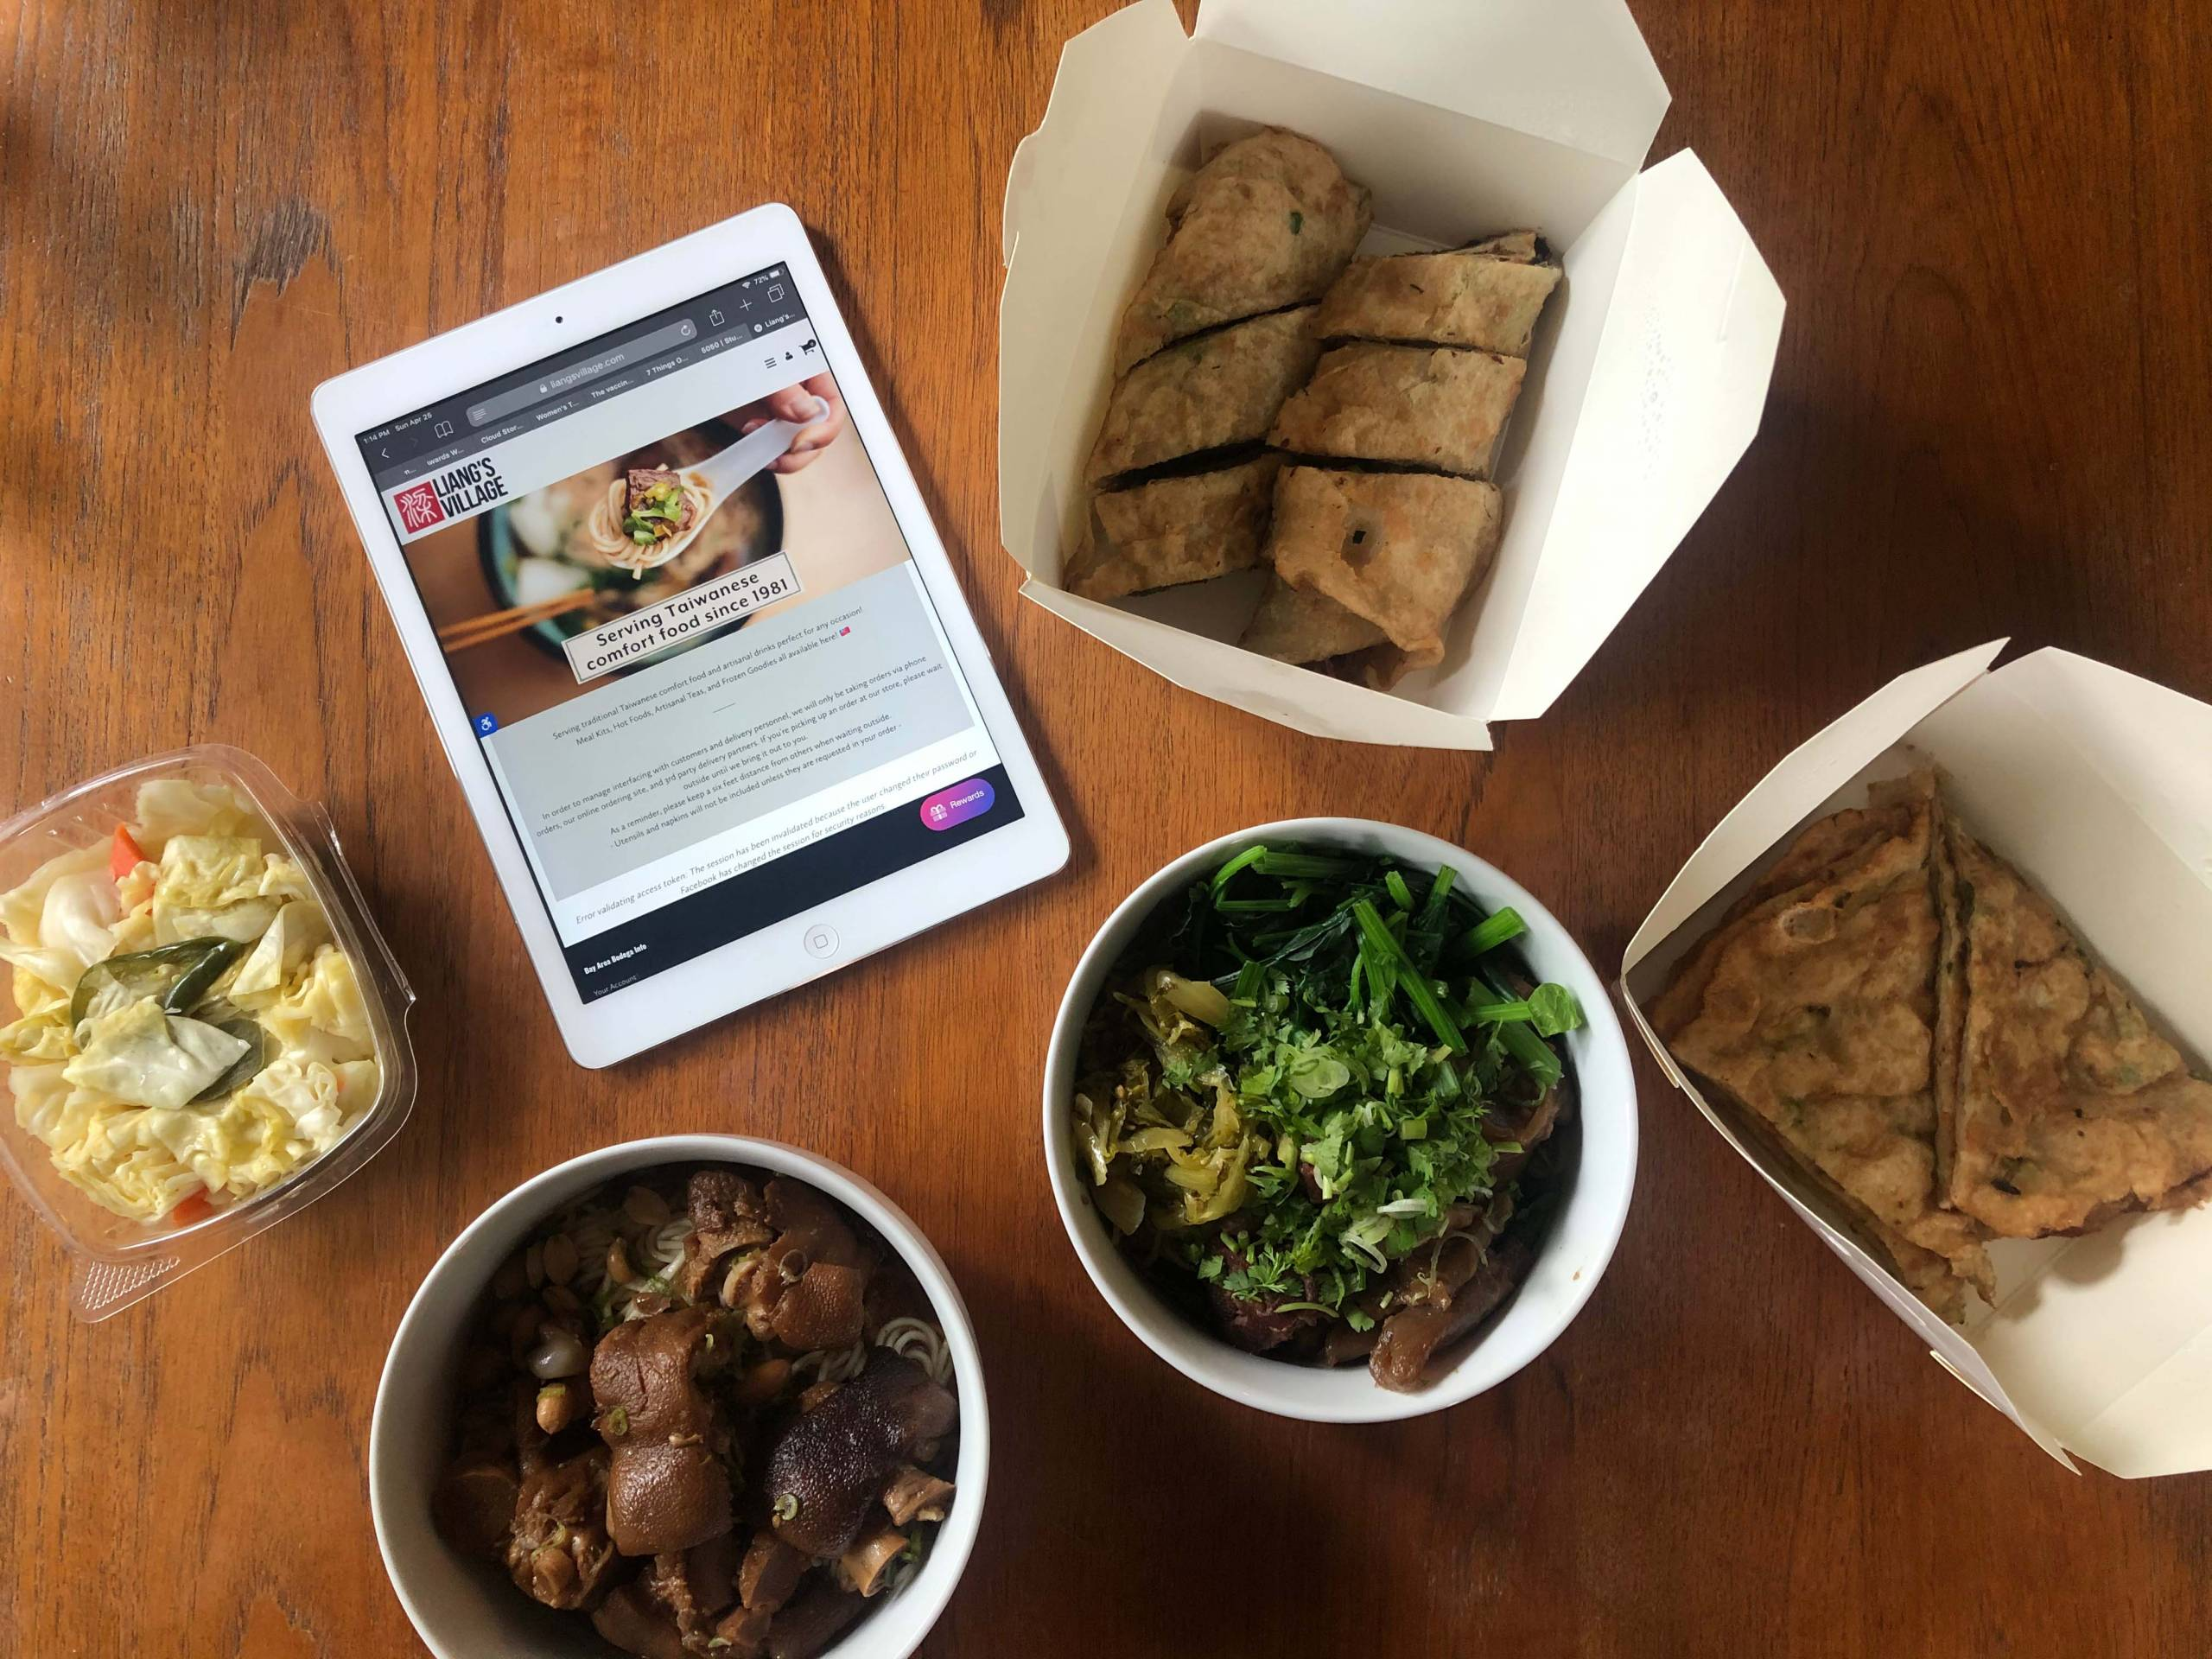 A spread of takeout dishes from Liang's Village in white takeout cartons.